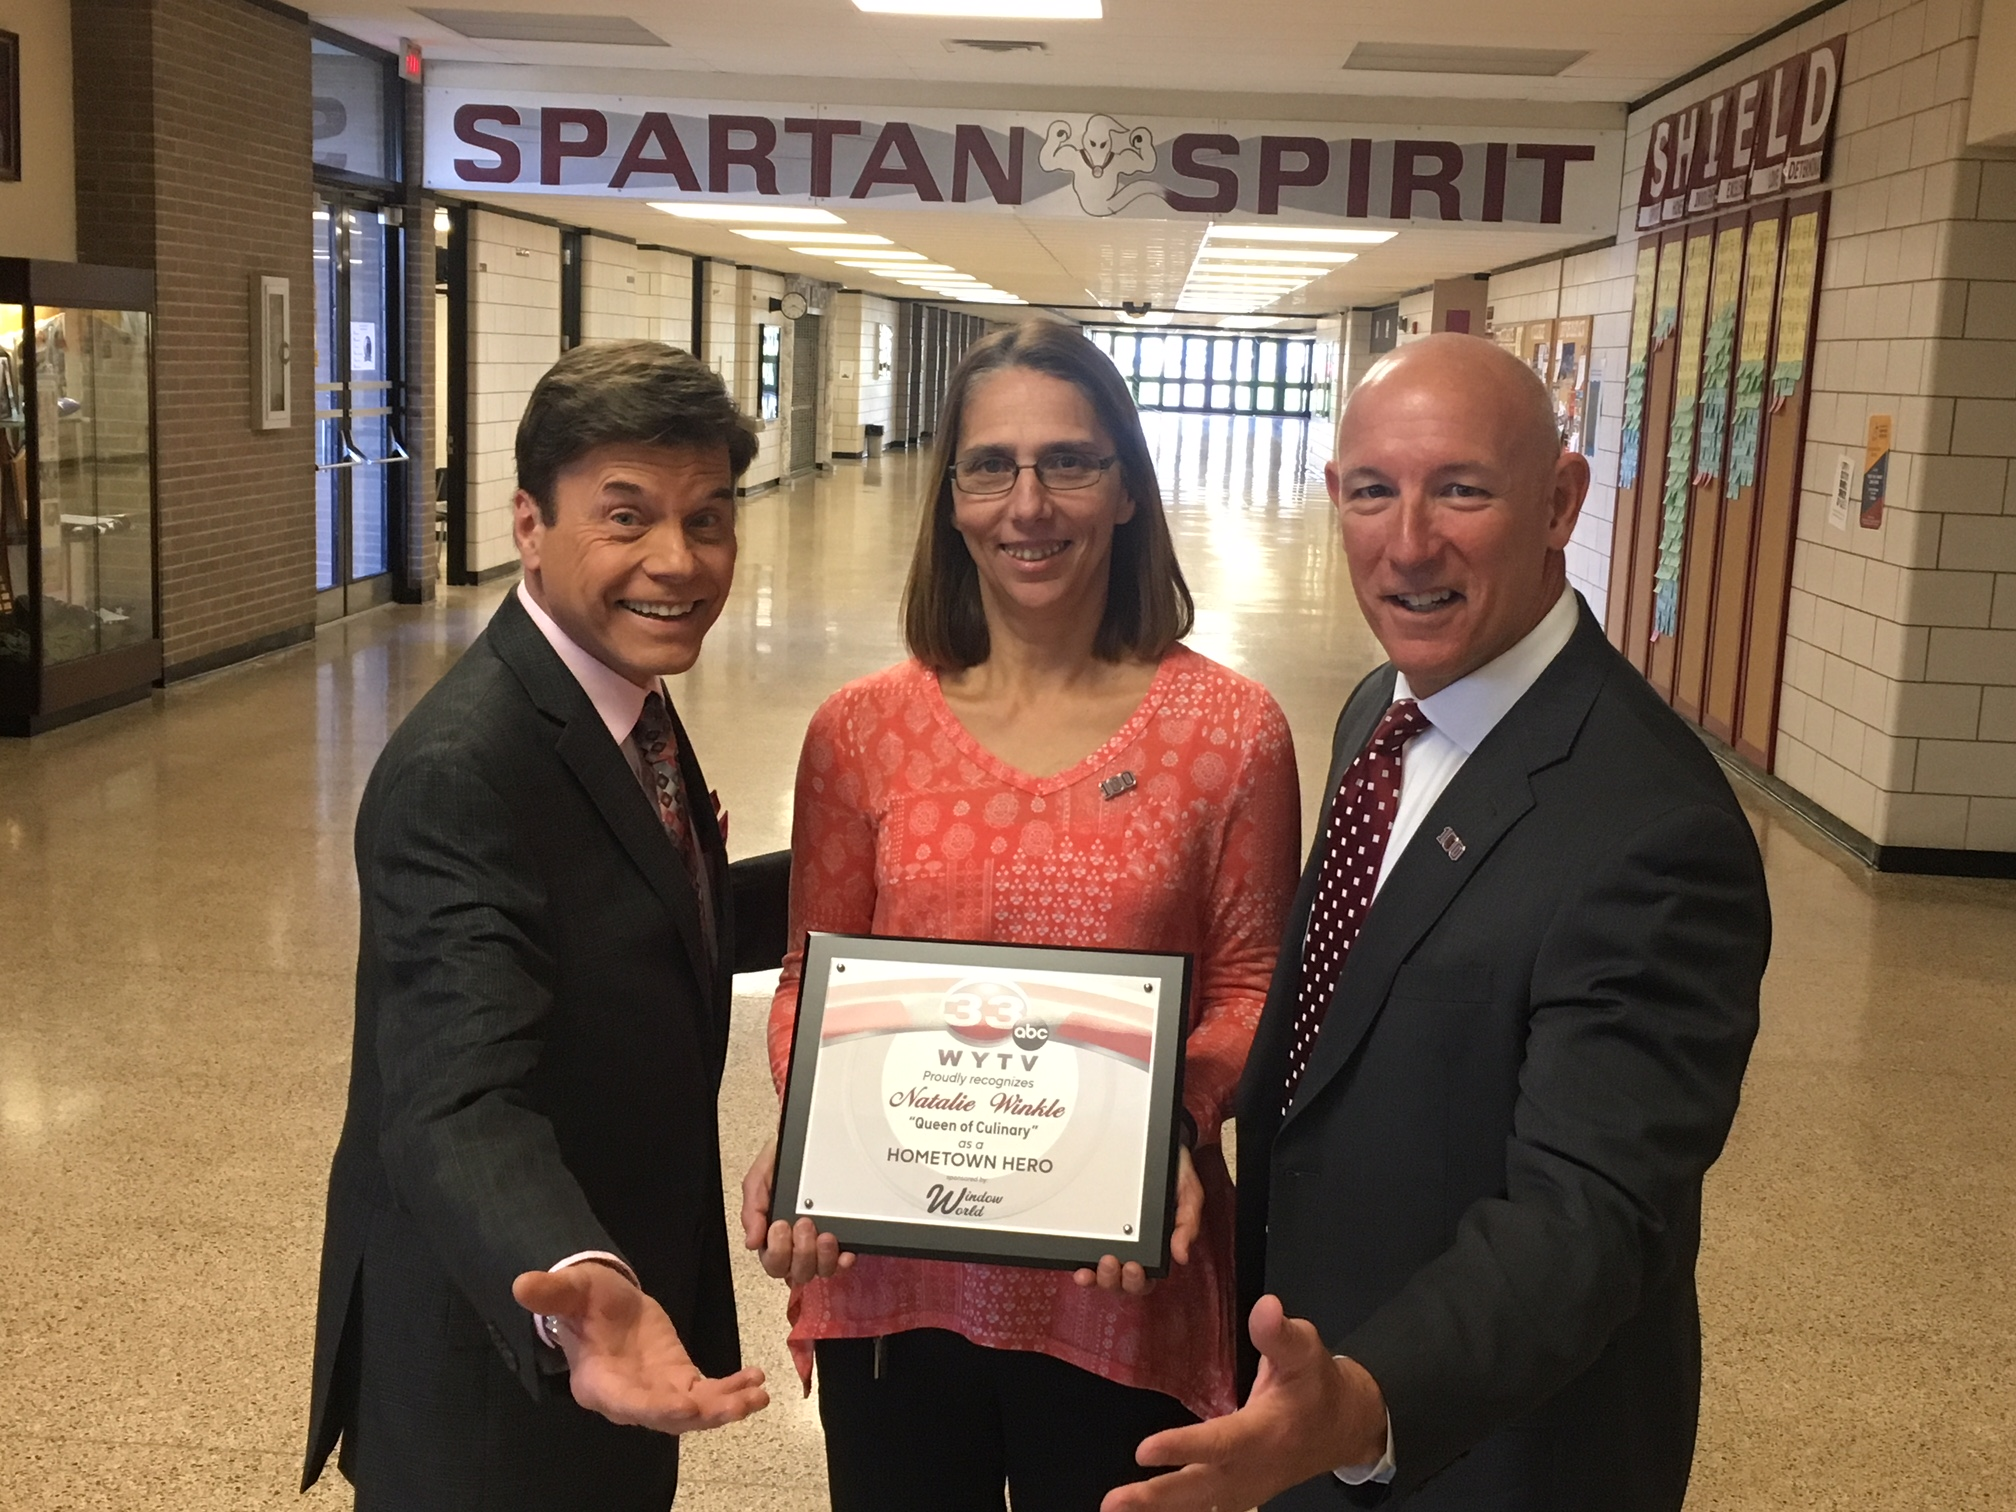 Natalie Winkle holding Home Town Hero Award with Channel 33 anchor Len Rome and Superintendent Tim Saxton